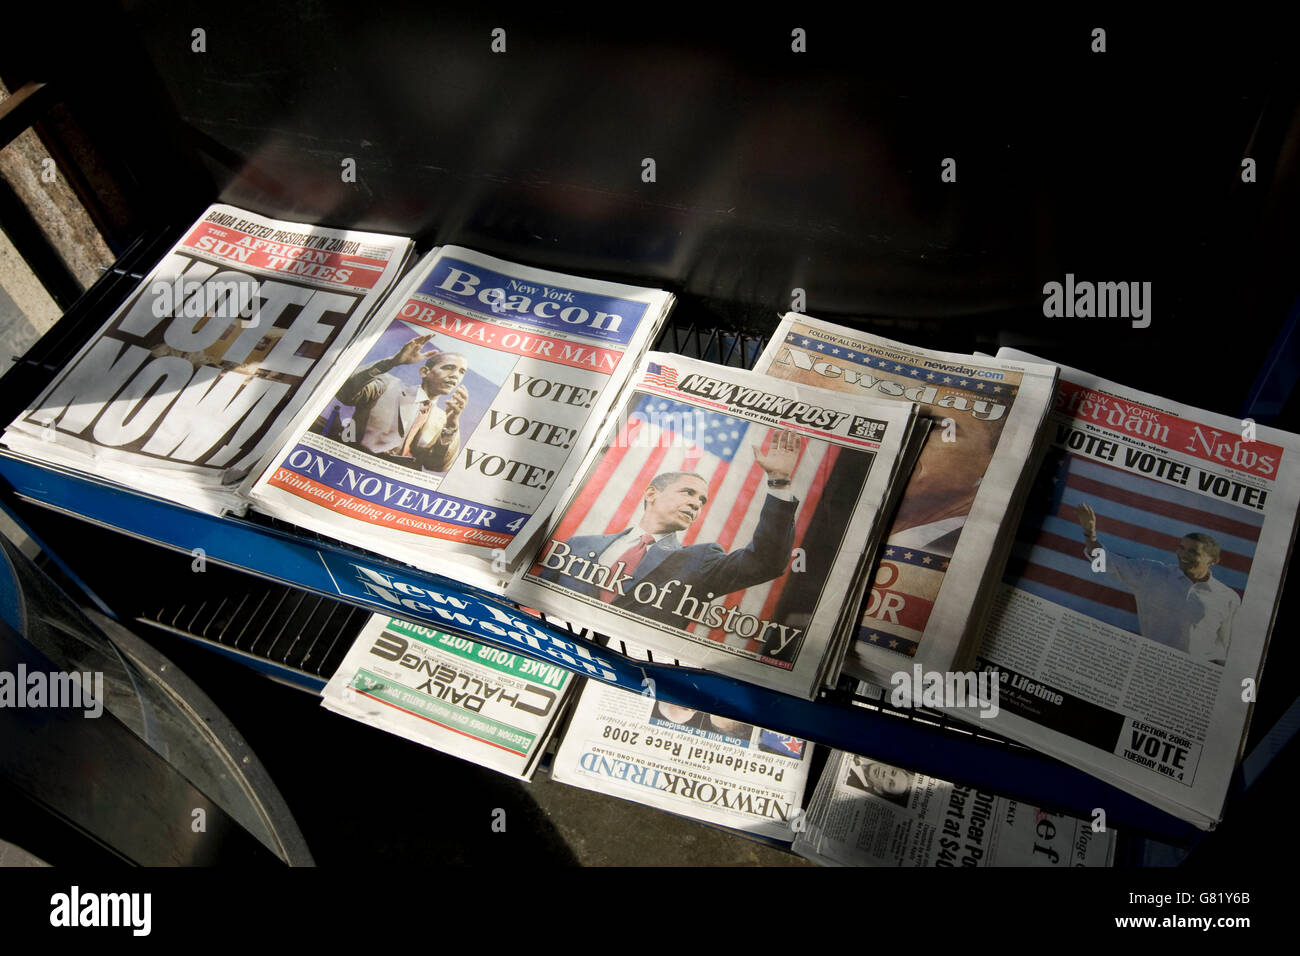 Newspapers on a stand in Harlem, New York, NY, United States, call to vote in the 2008 US general election, 4 November - Stock Image